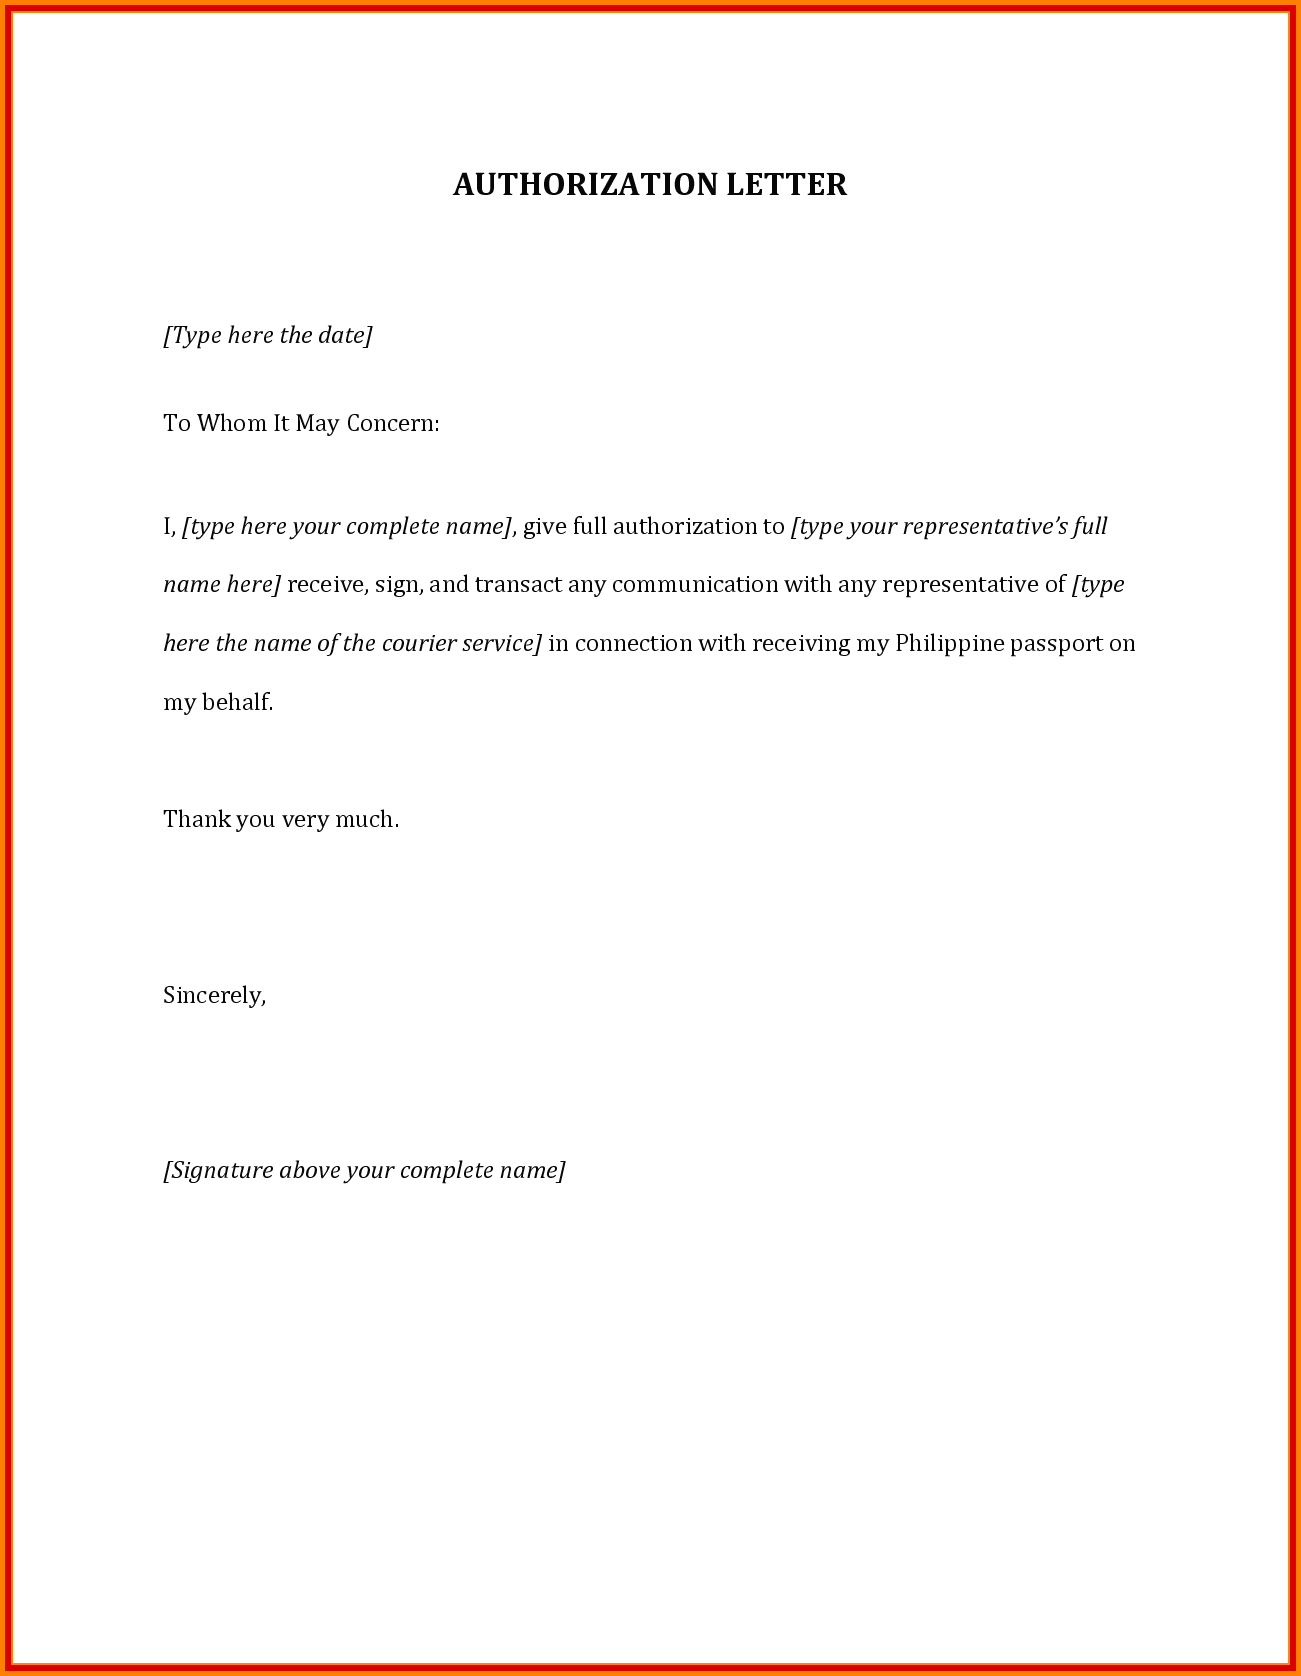 Pin by Lhouisa Cardinoza on Letter sample | Letter template ... Courier Authorization Letter Template on courier clip art, courier service letter, courier cover letter, courier authorization memo, courier authorization card,